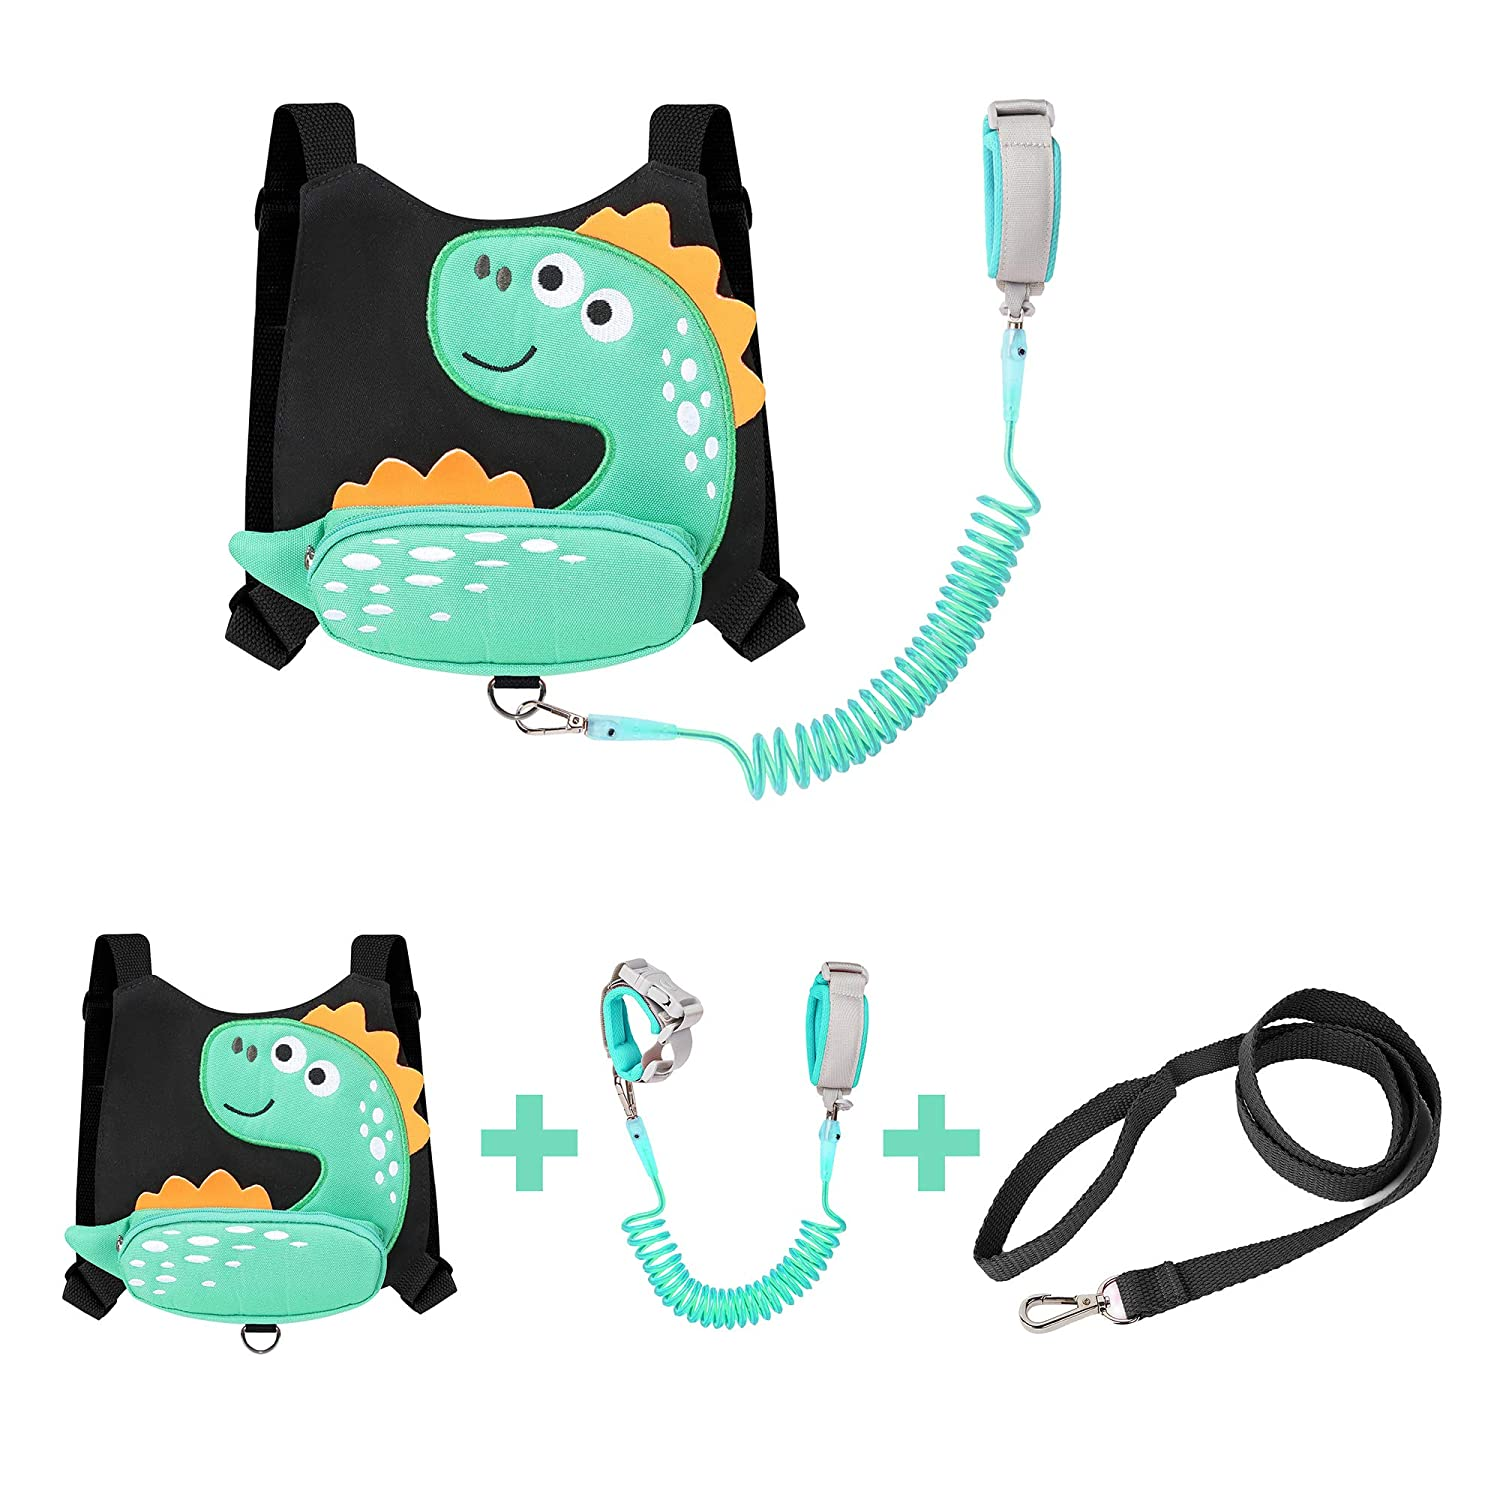 EPLAZA Dinosaur-Like Toddler Harnesses with Leashes Anti Lost Wrist Link Wristband for 1.5 to 3 Years Kids Girls Boys Safety (Little Dinosaur Black)